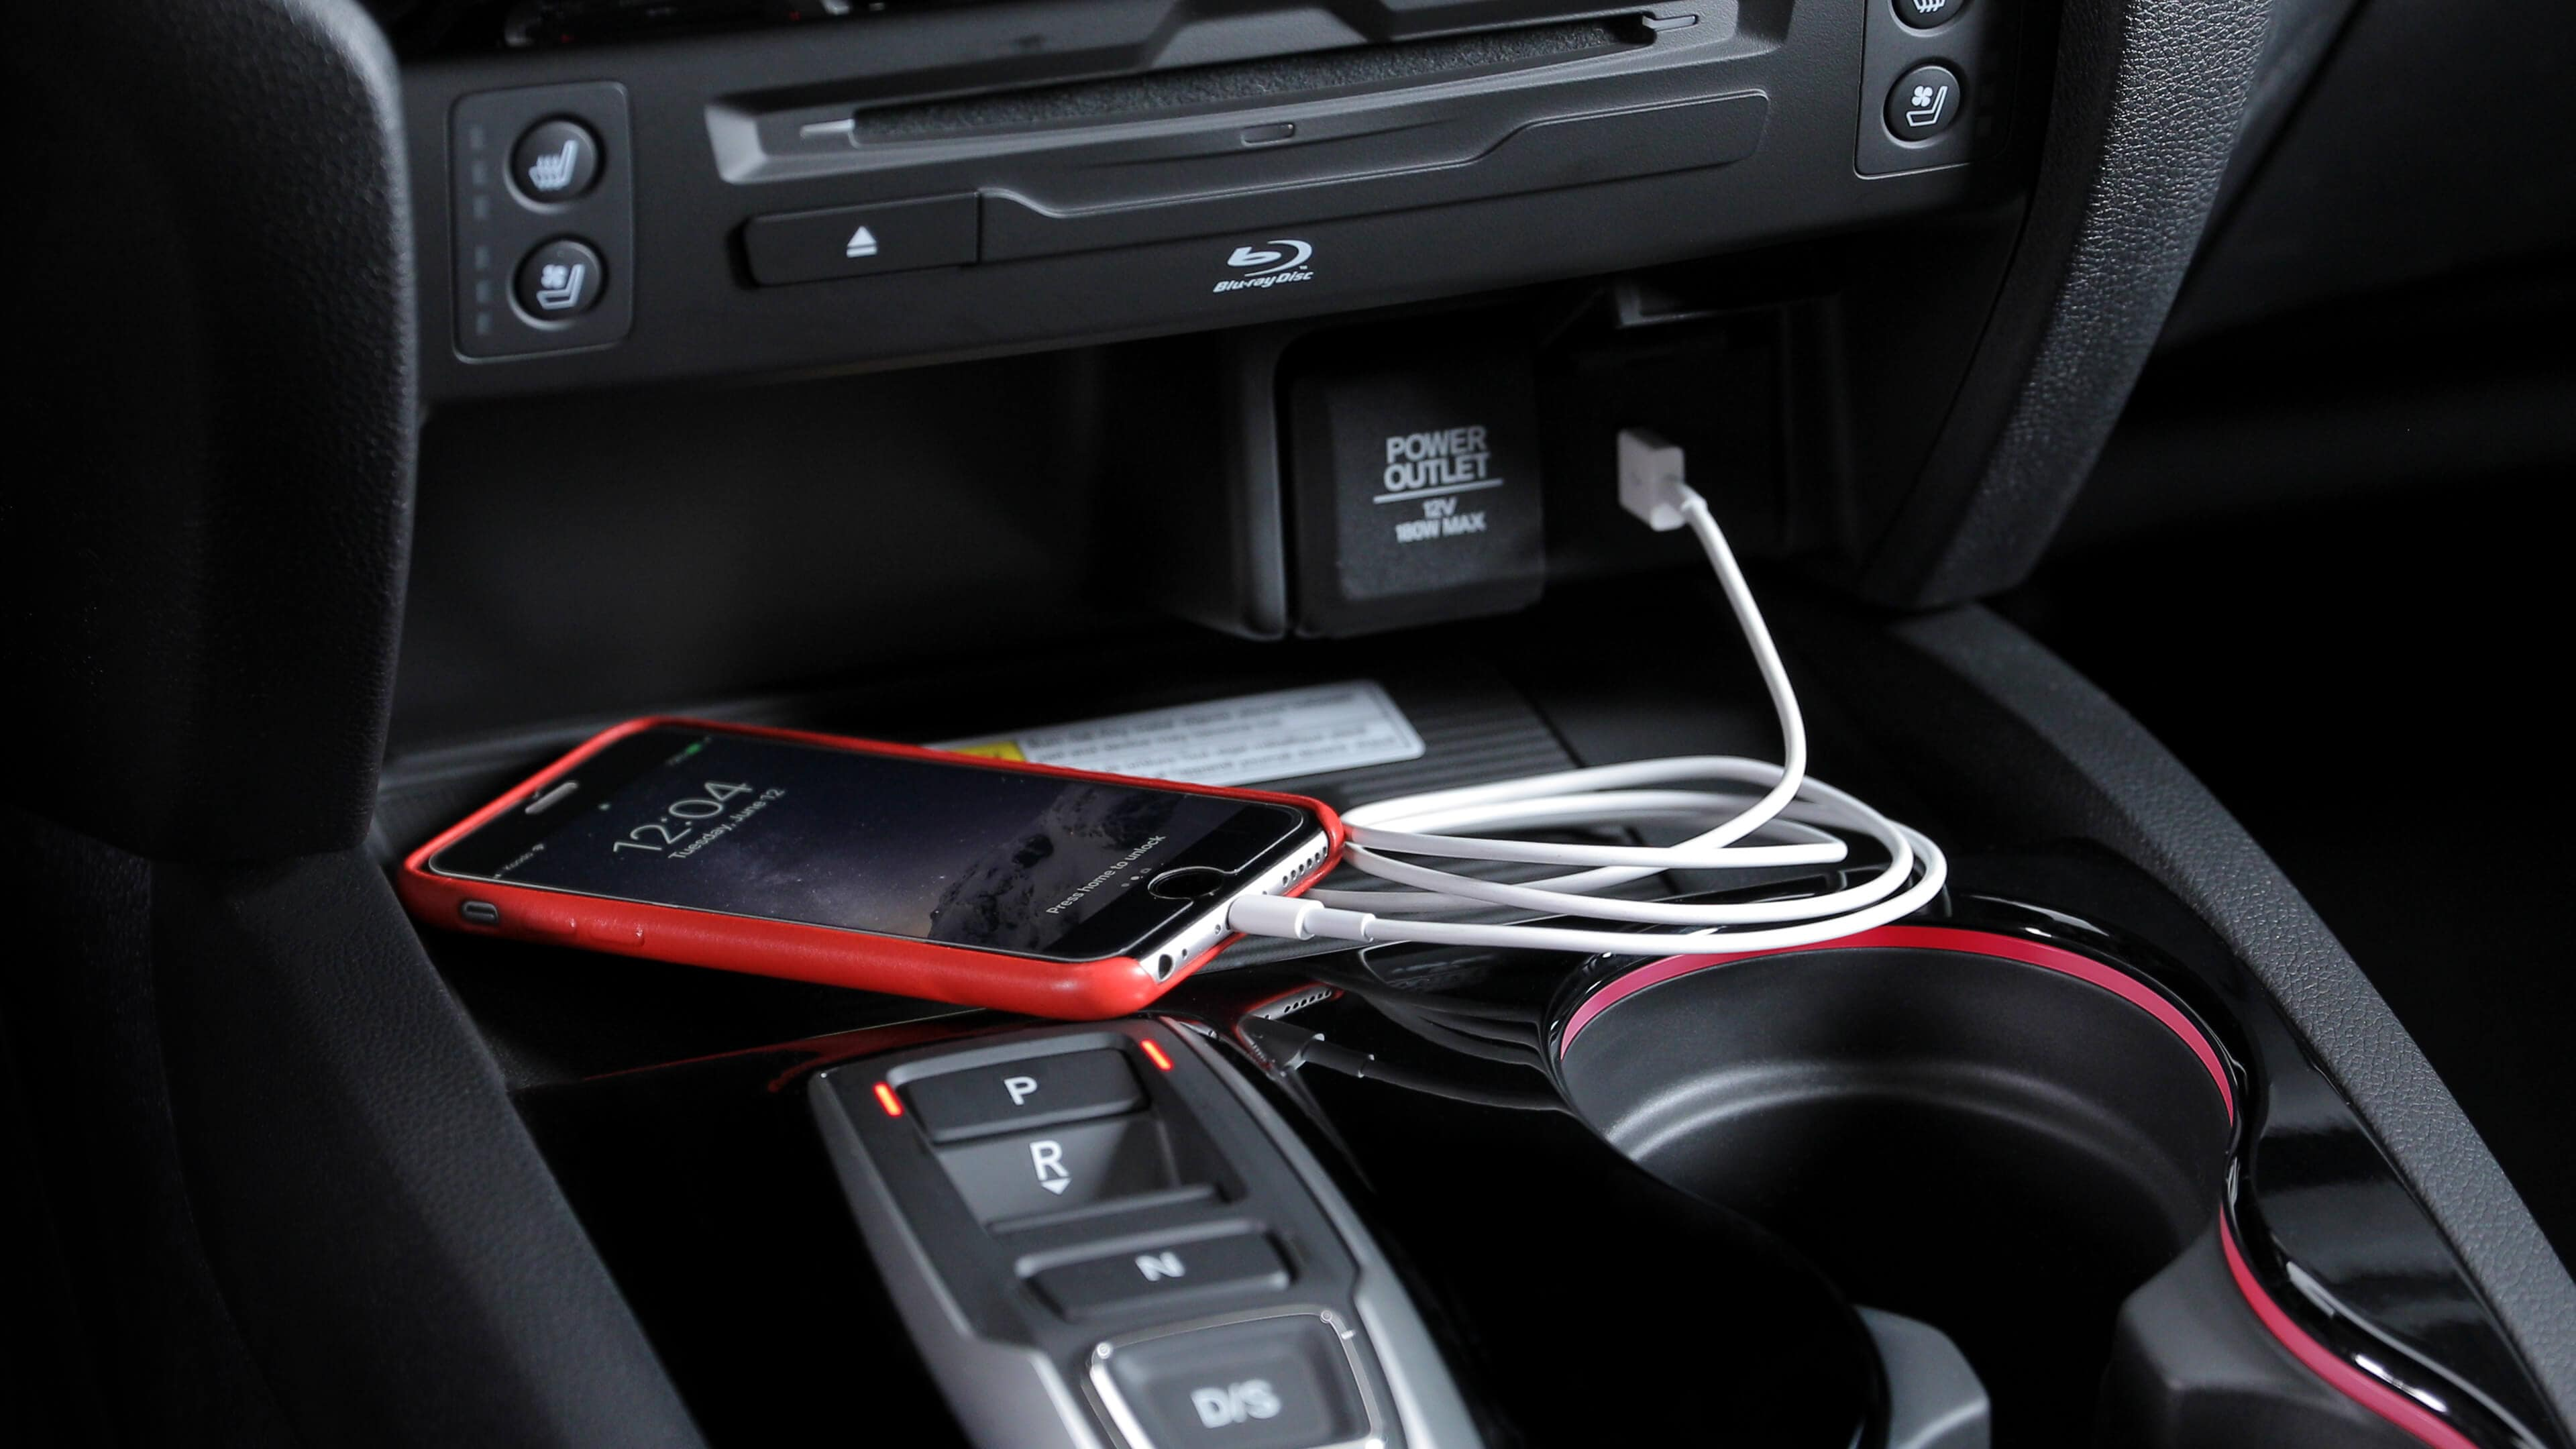 iPhone plugged into 2020 Honda Pilot outlet